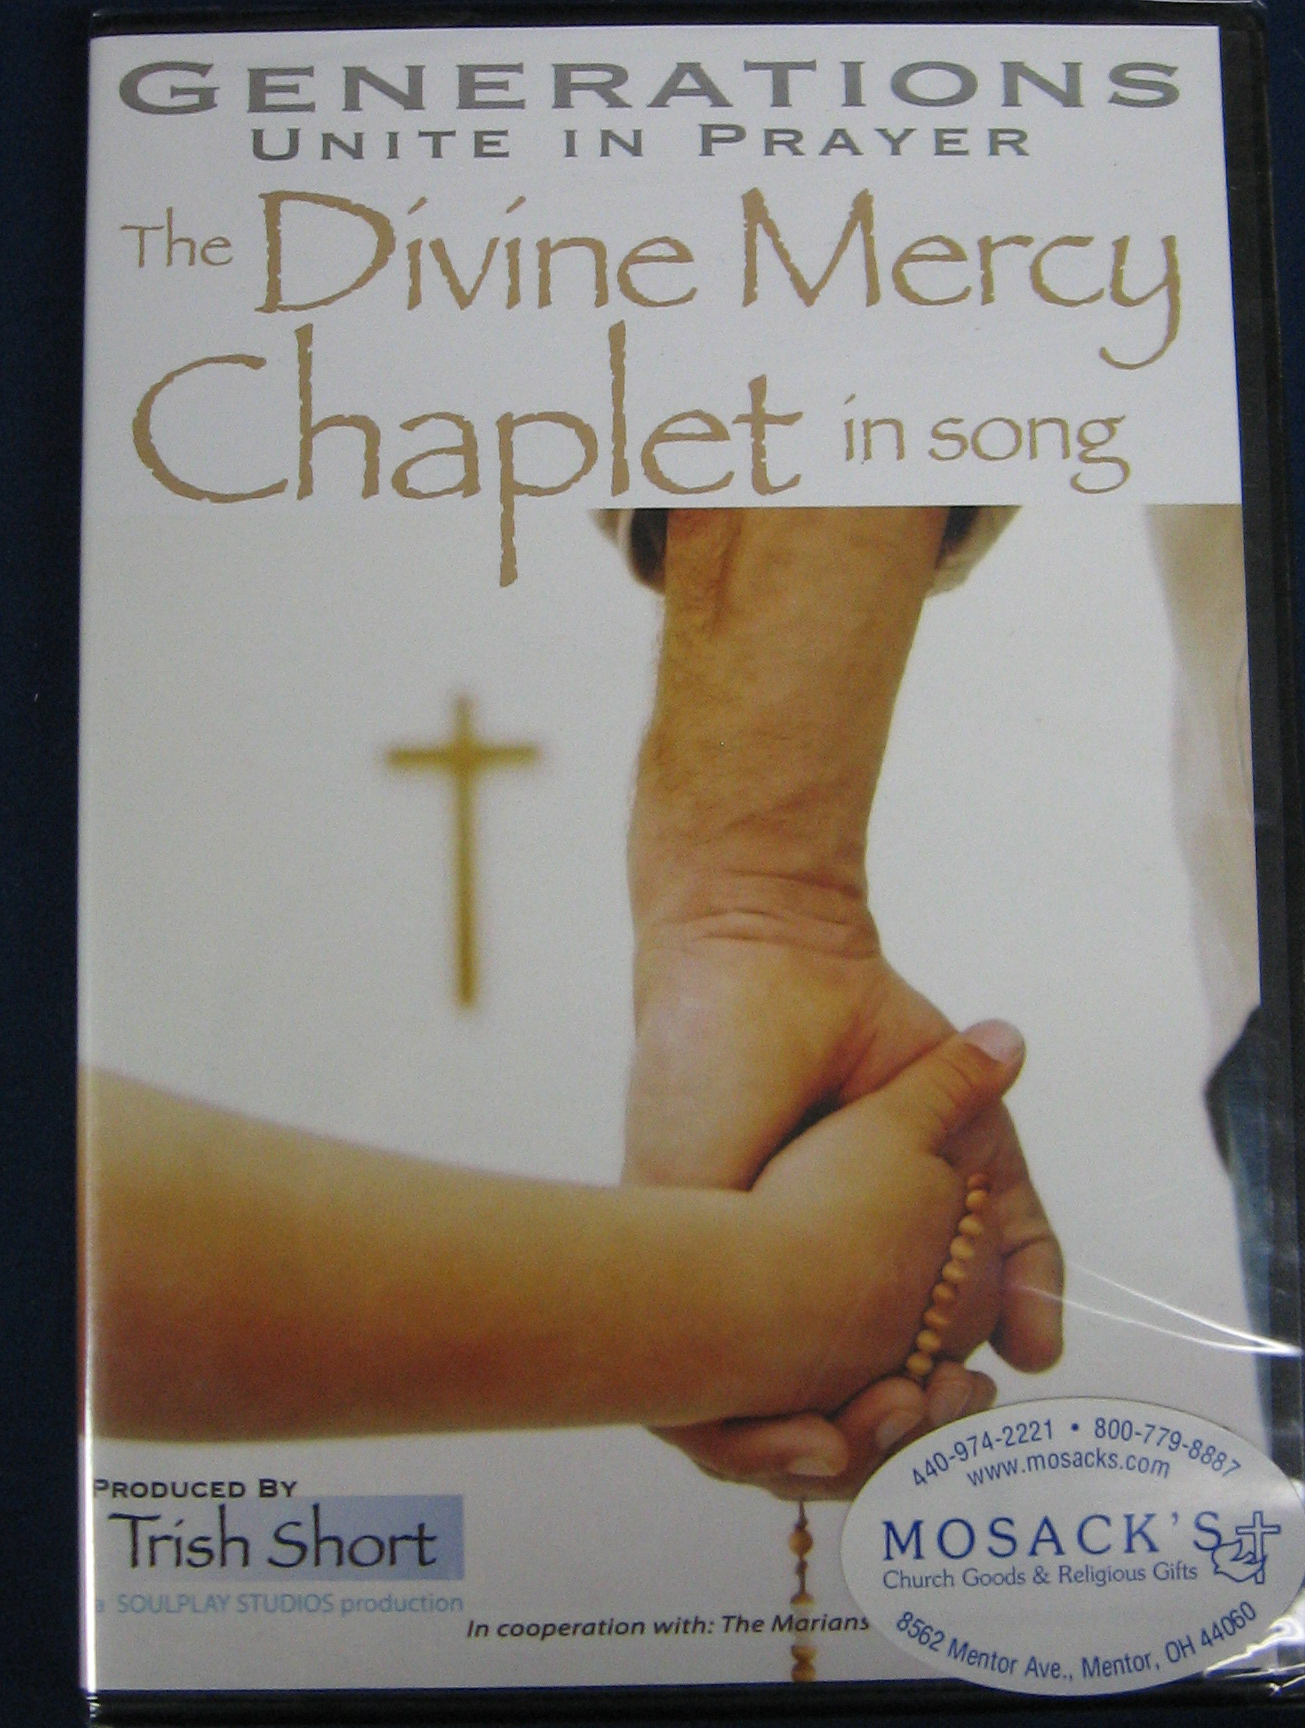 The Divine Mercy Chaplet In Song DVD-9781596141759 Generations Unite in Song Divine Mercy Chaplet DVD